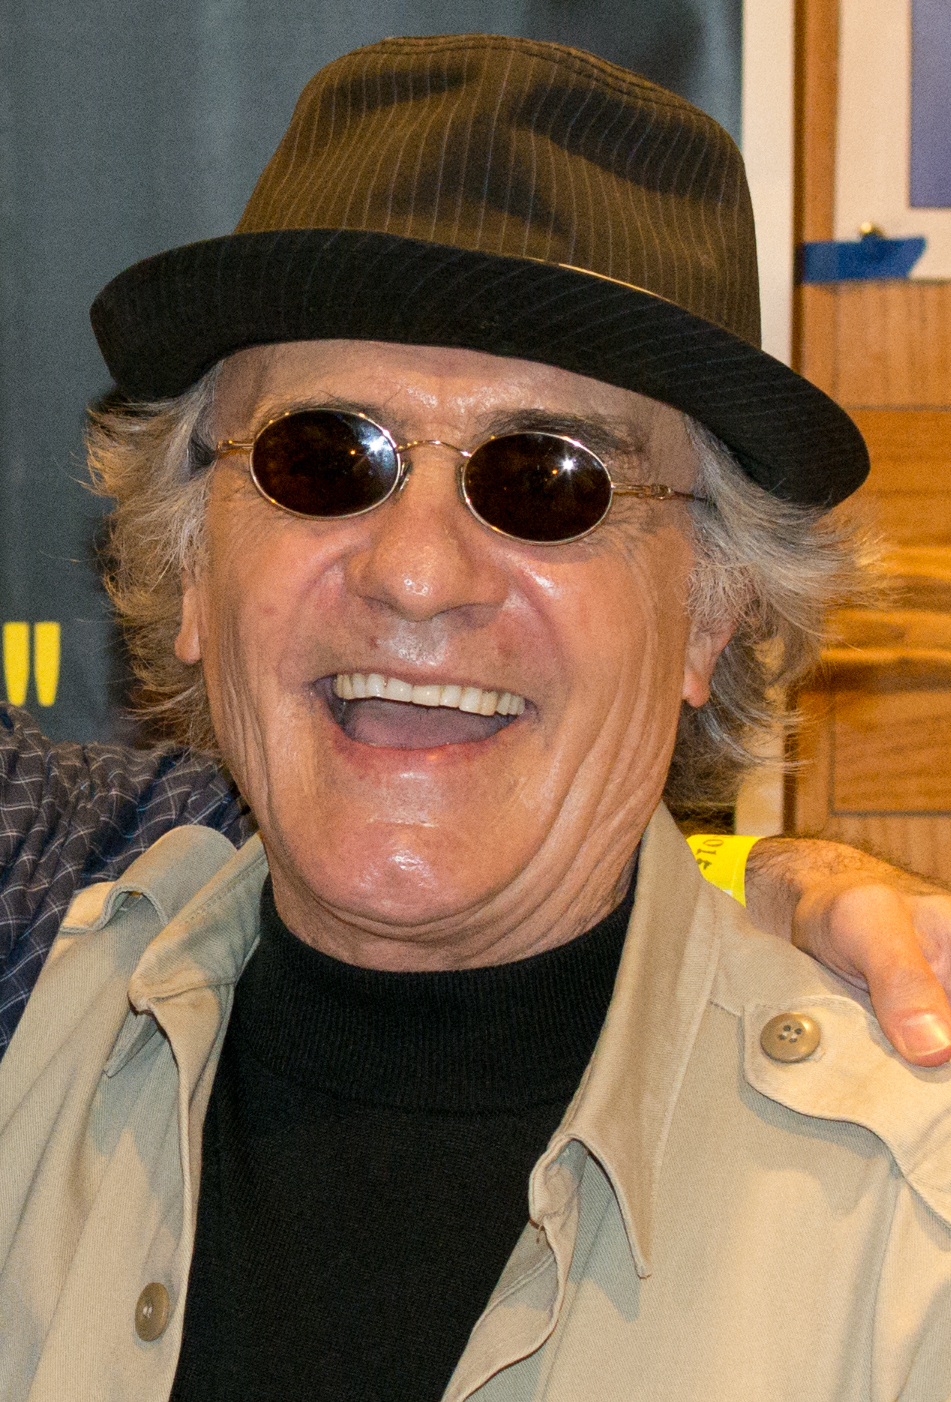 Terry Kiser, the actor's actor...